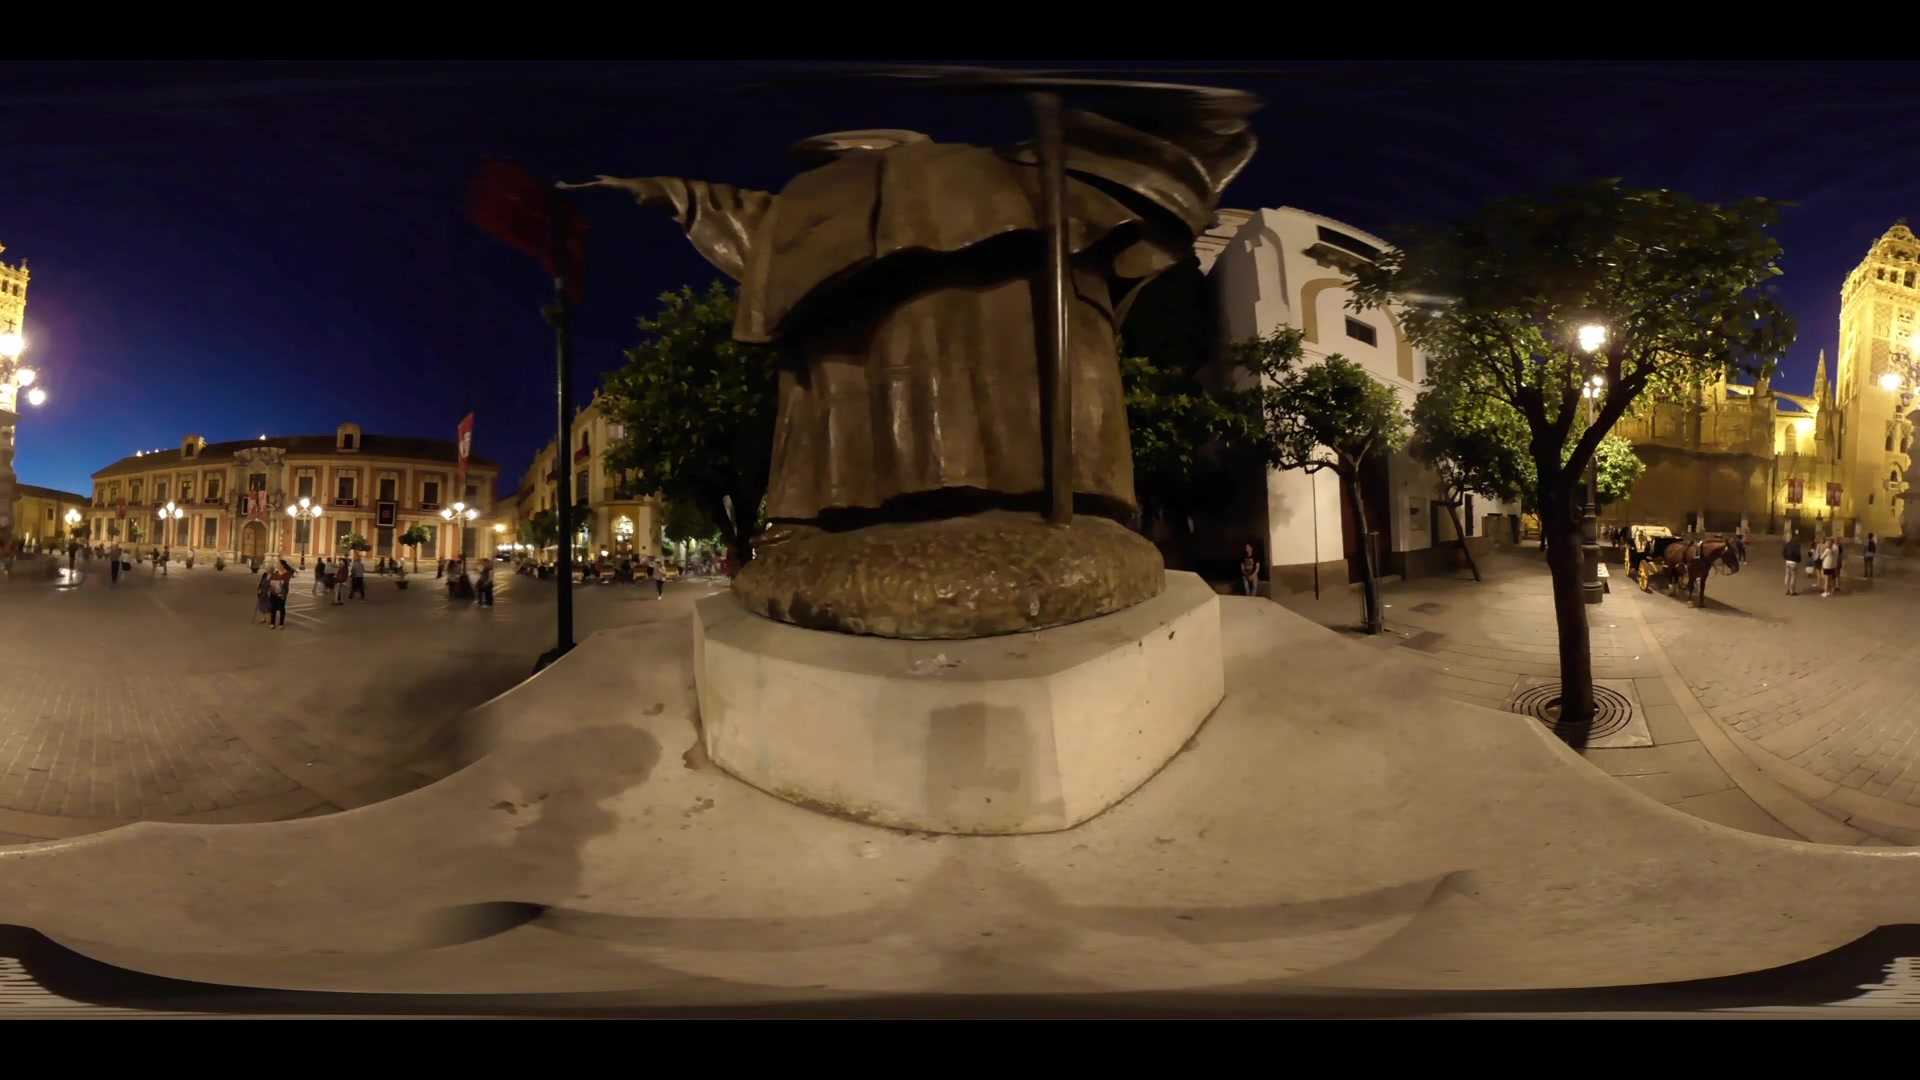 Virtual Reality 360 view from the Cathedral of Saint Mary of the See (Seville Cathedral) next to the pope statue at night in Seville Spain